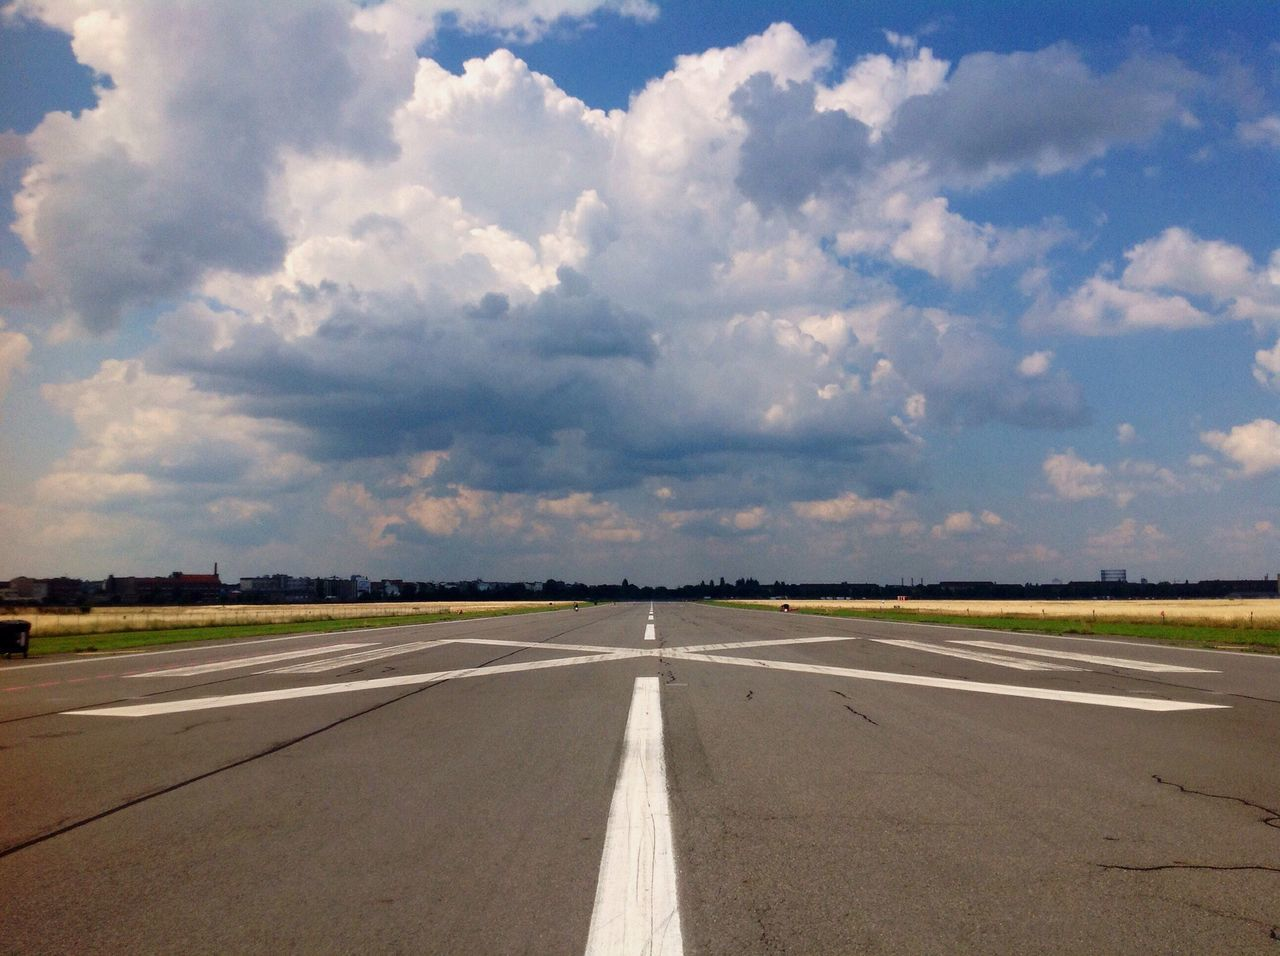 Sky Road Transportation Empty No People Cloud - Sky Airport Runway Outdoors Asphalt The Way Forward Airport Day Landscape Runway Nature Luftbrücke Tempelhof Travel Destinations Tempelhofer Feld